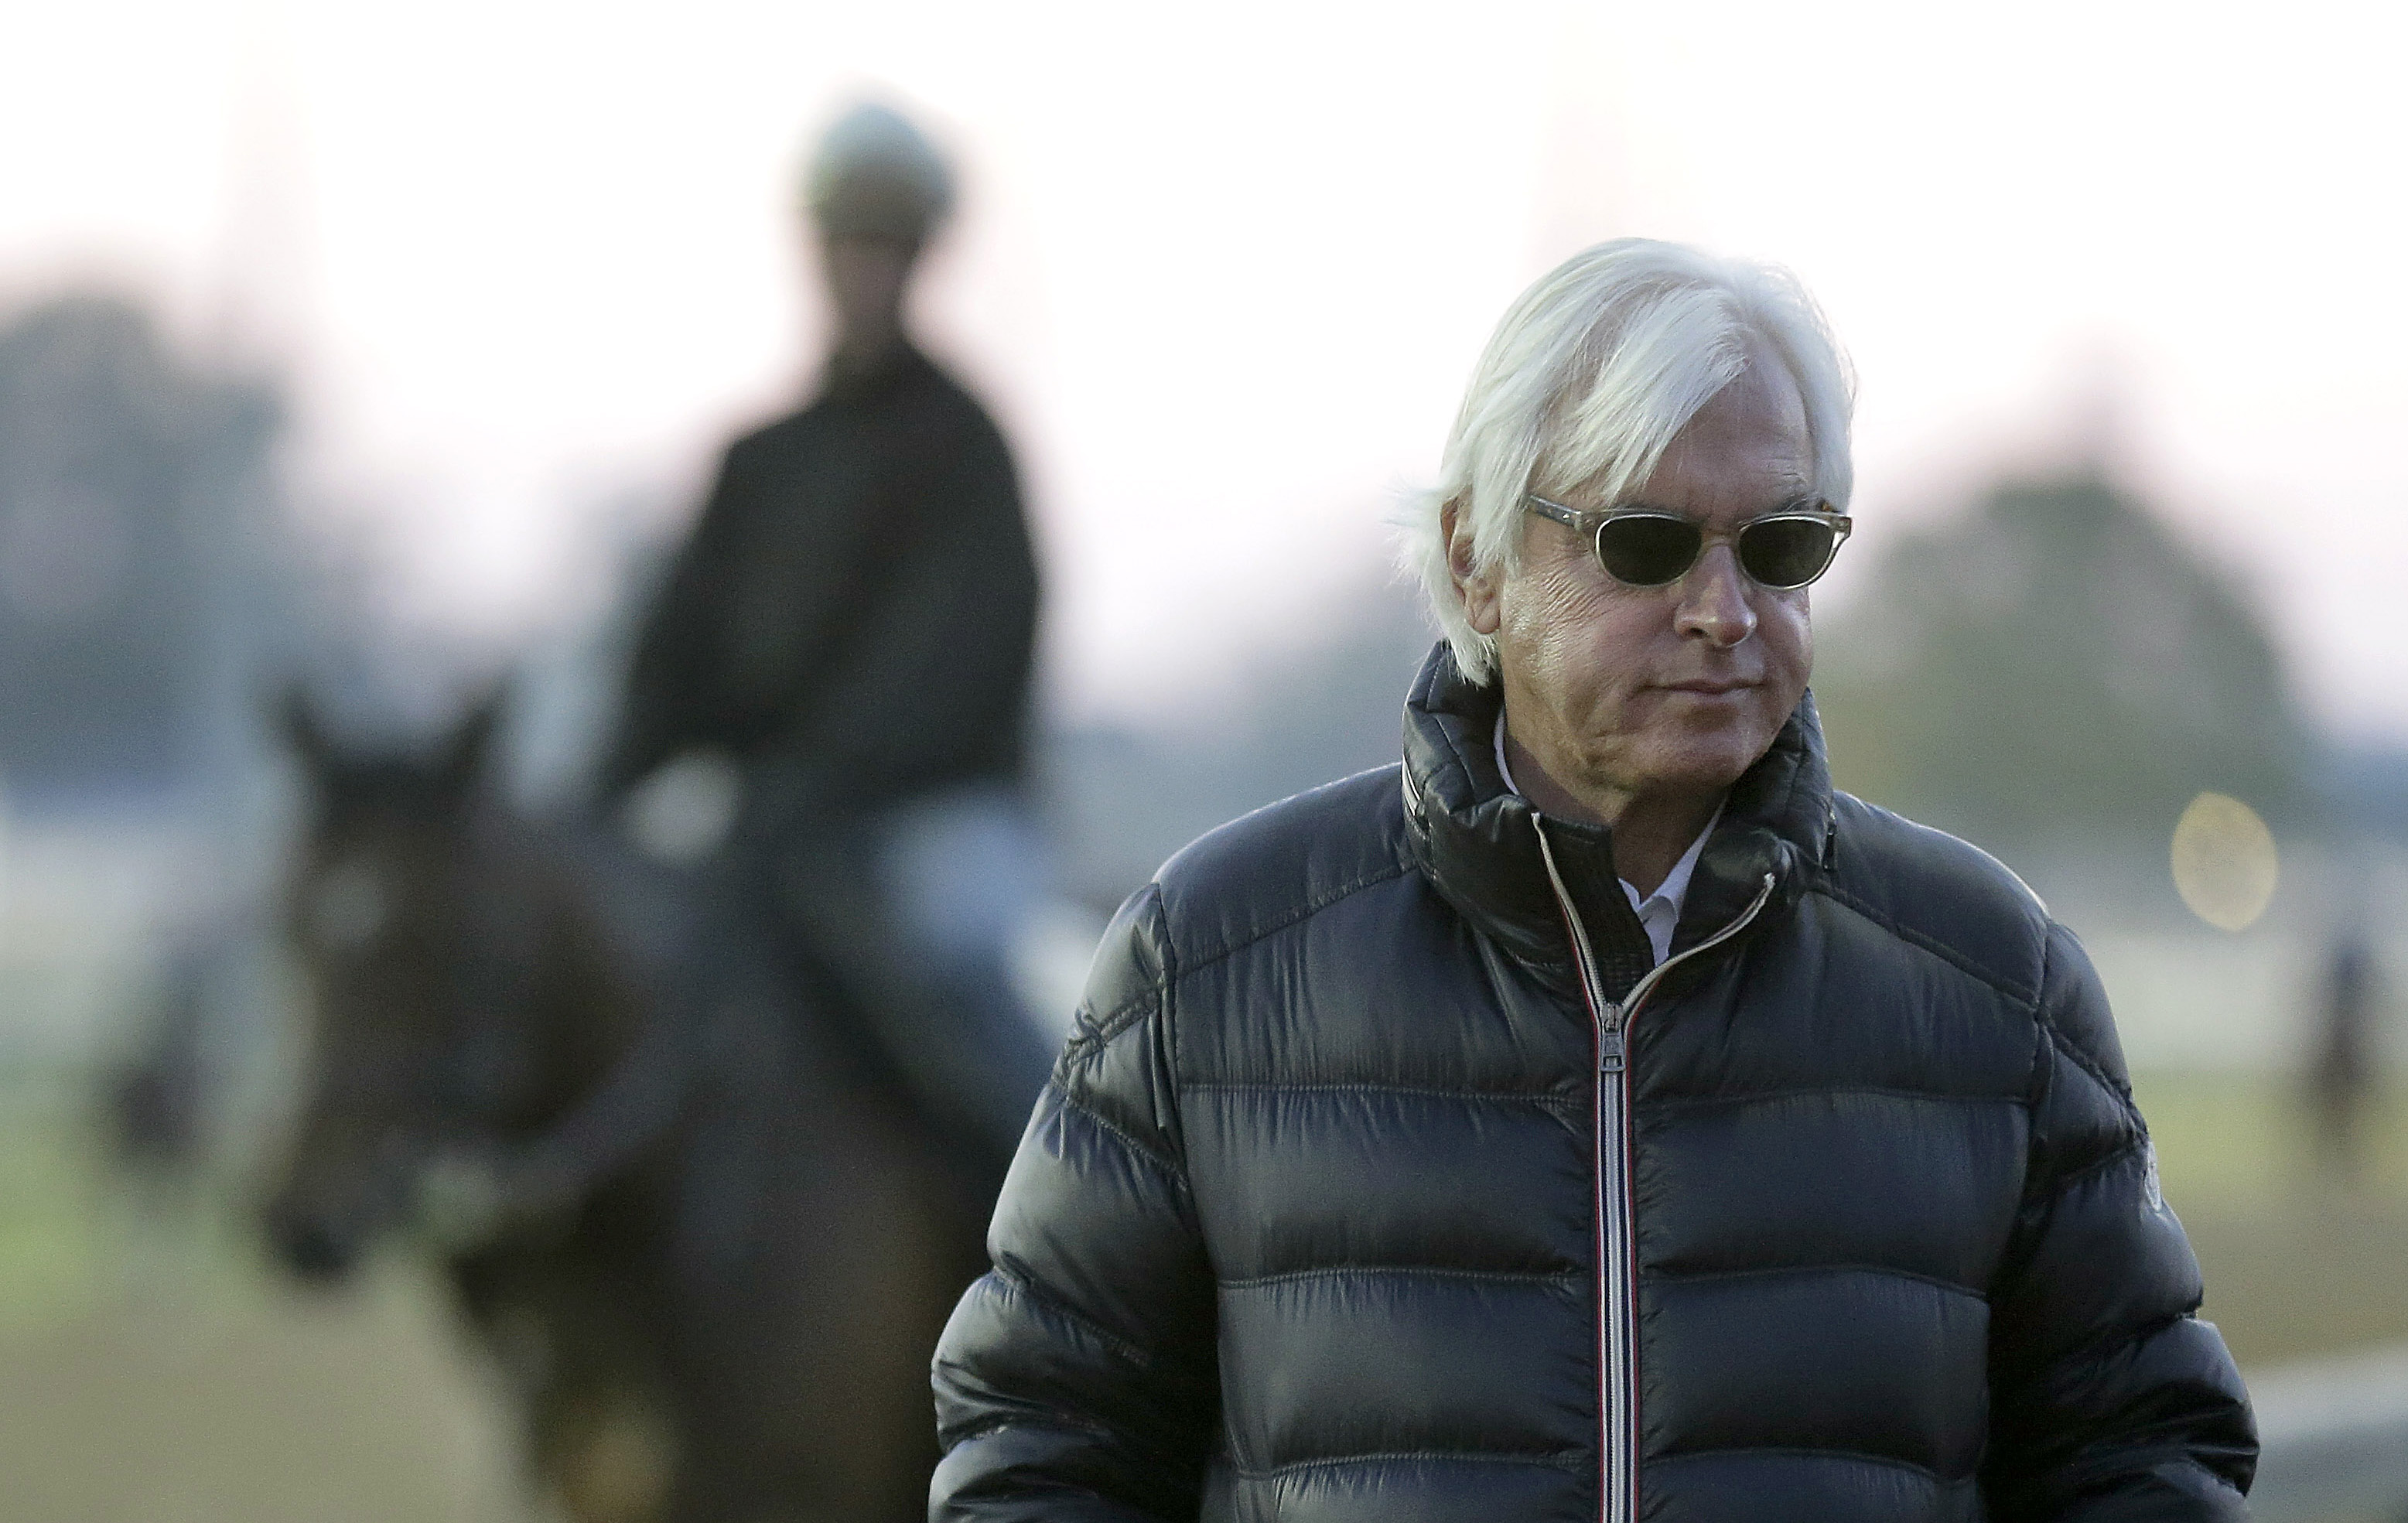 FILE - In this April 28, 2015 file photo, trainer Bob Baffert watches horses workout at Churchill Downs, in Louisville, Ky. Before Baffert won the Kentucky Derby for the first time, he lost.  Seize the moment is Baffert's mantra. Don't think about those g